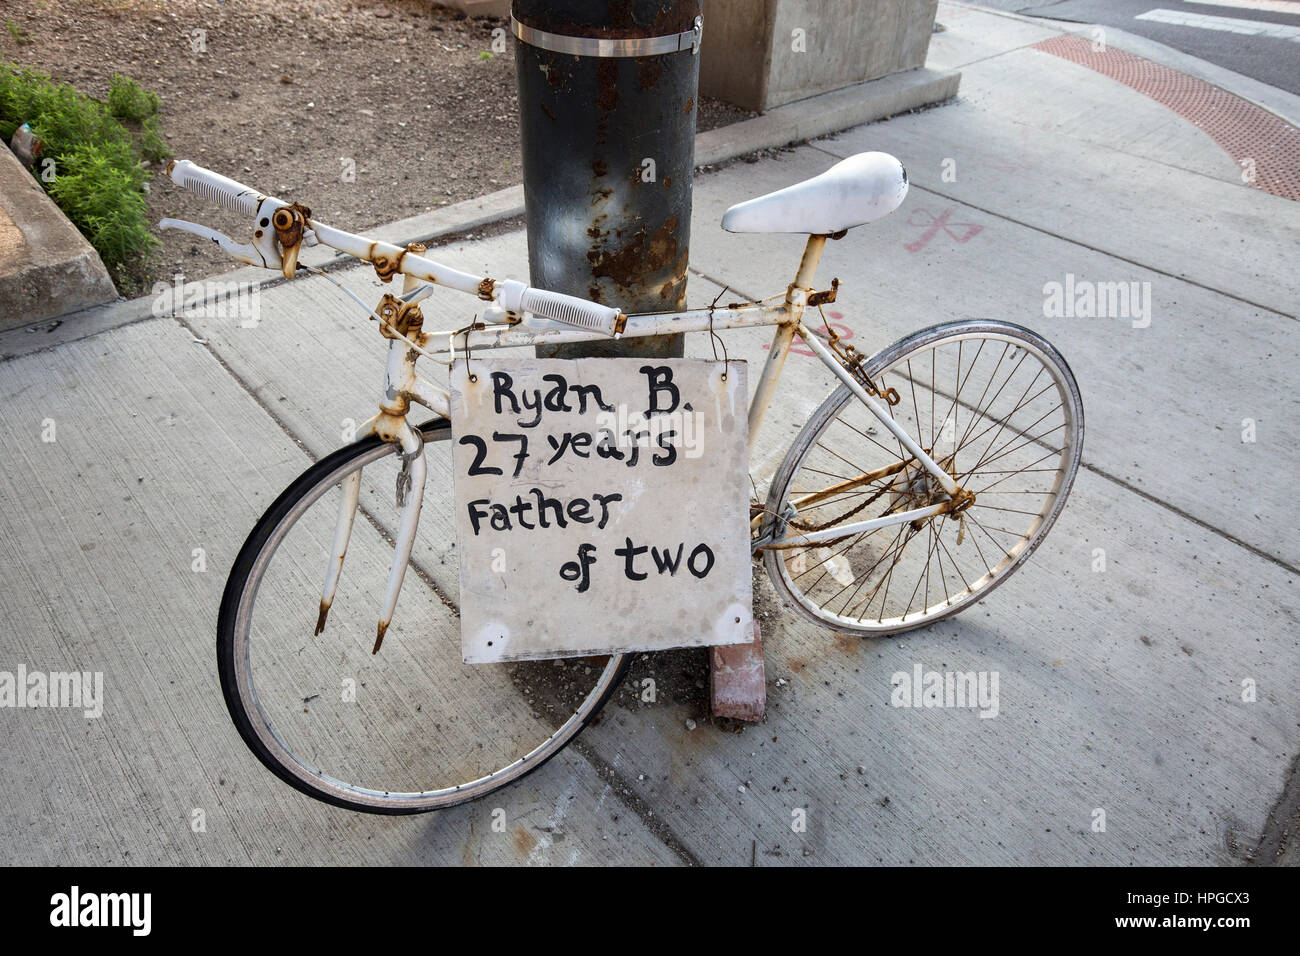 Ghost bike in Chicago's Chinatown district memorializing a man killed in a bicycle accident. - Stock Image